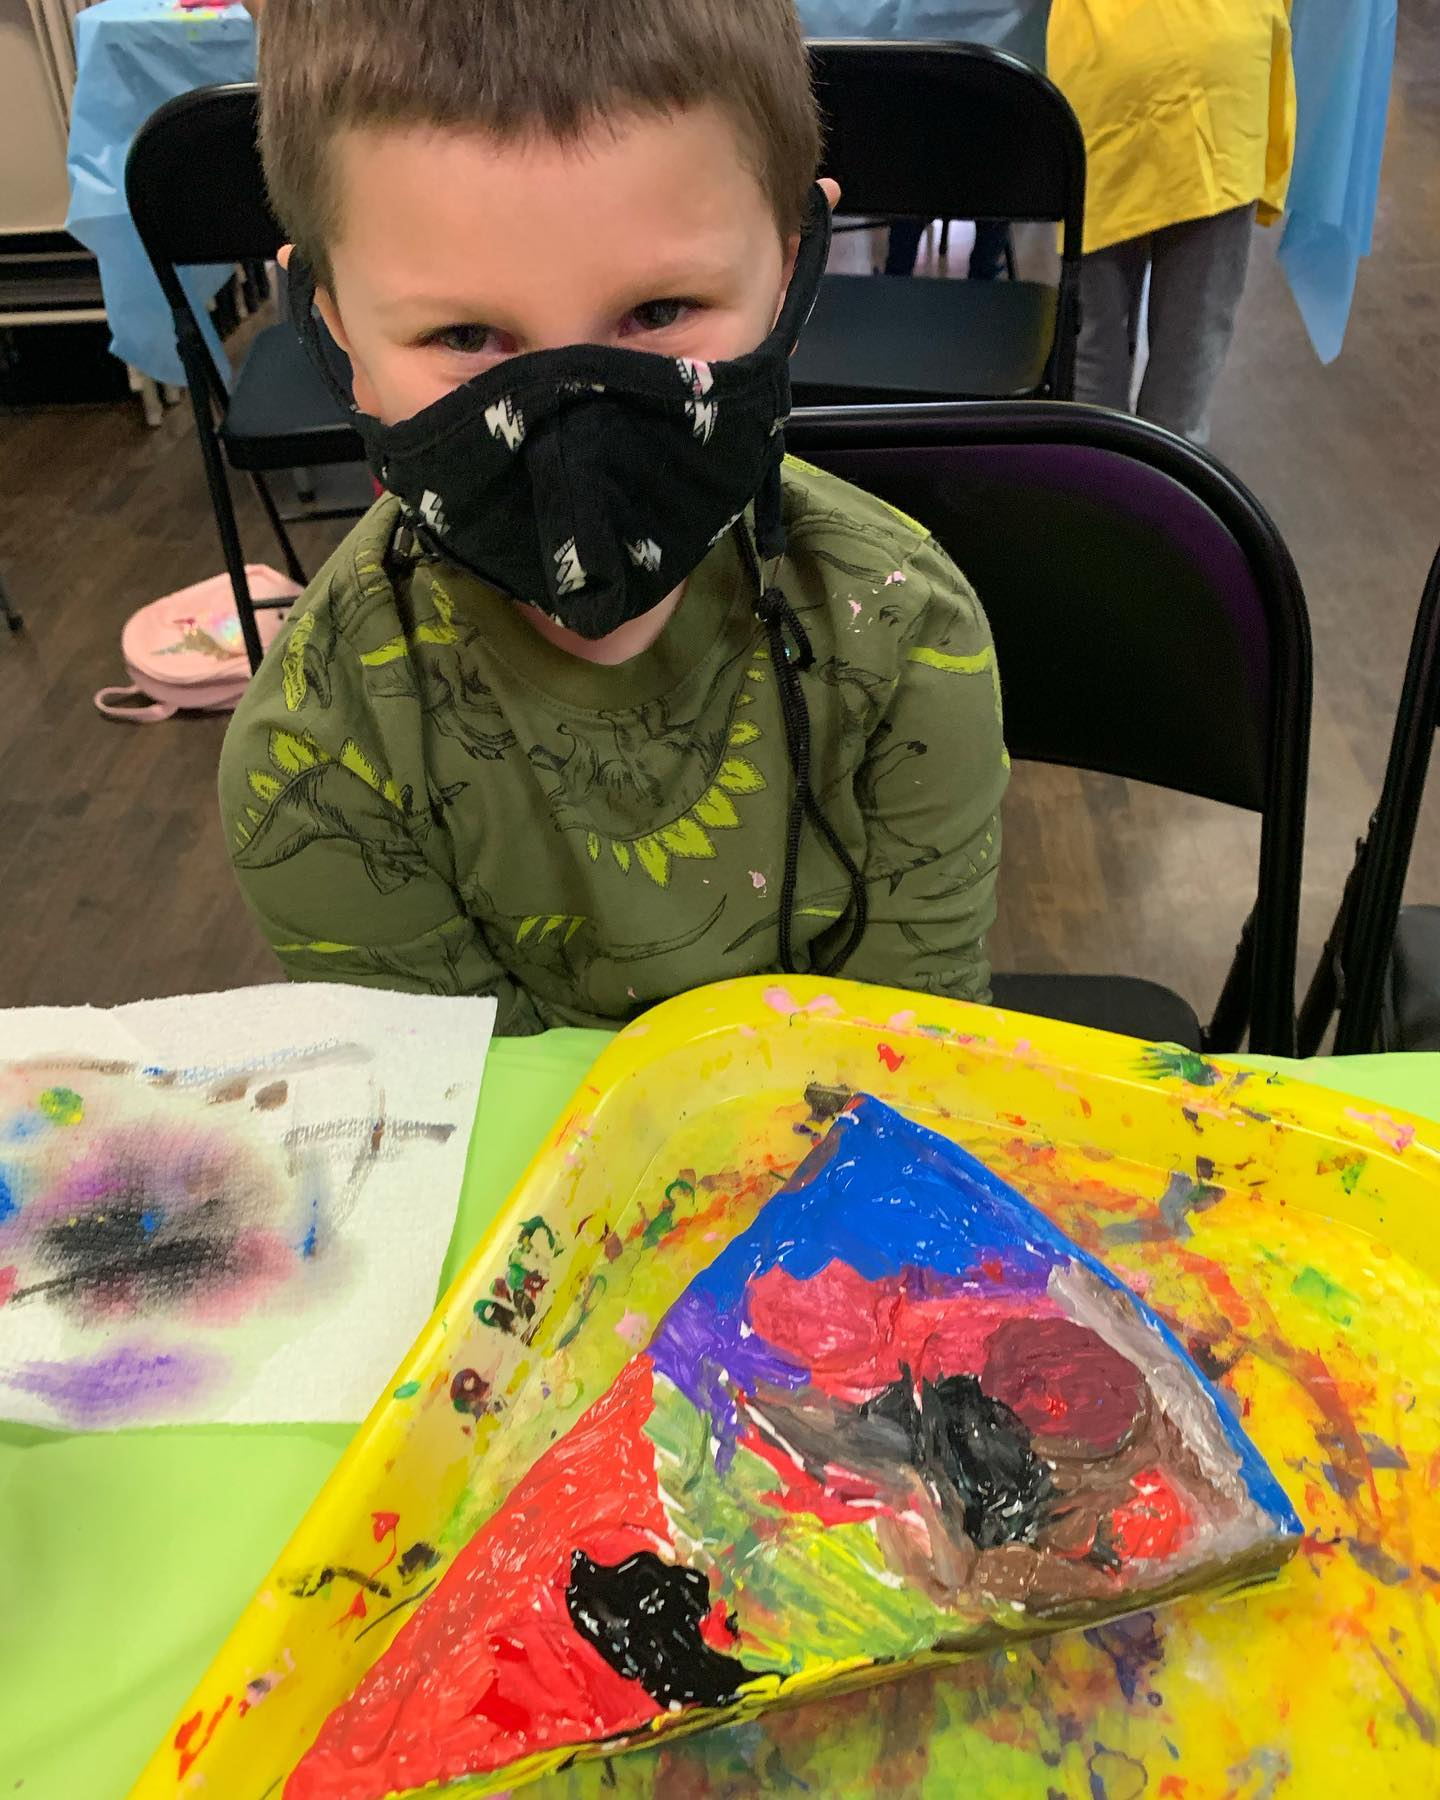 Boy in mask with pizza plaster painting